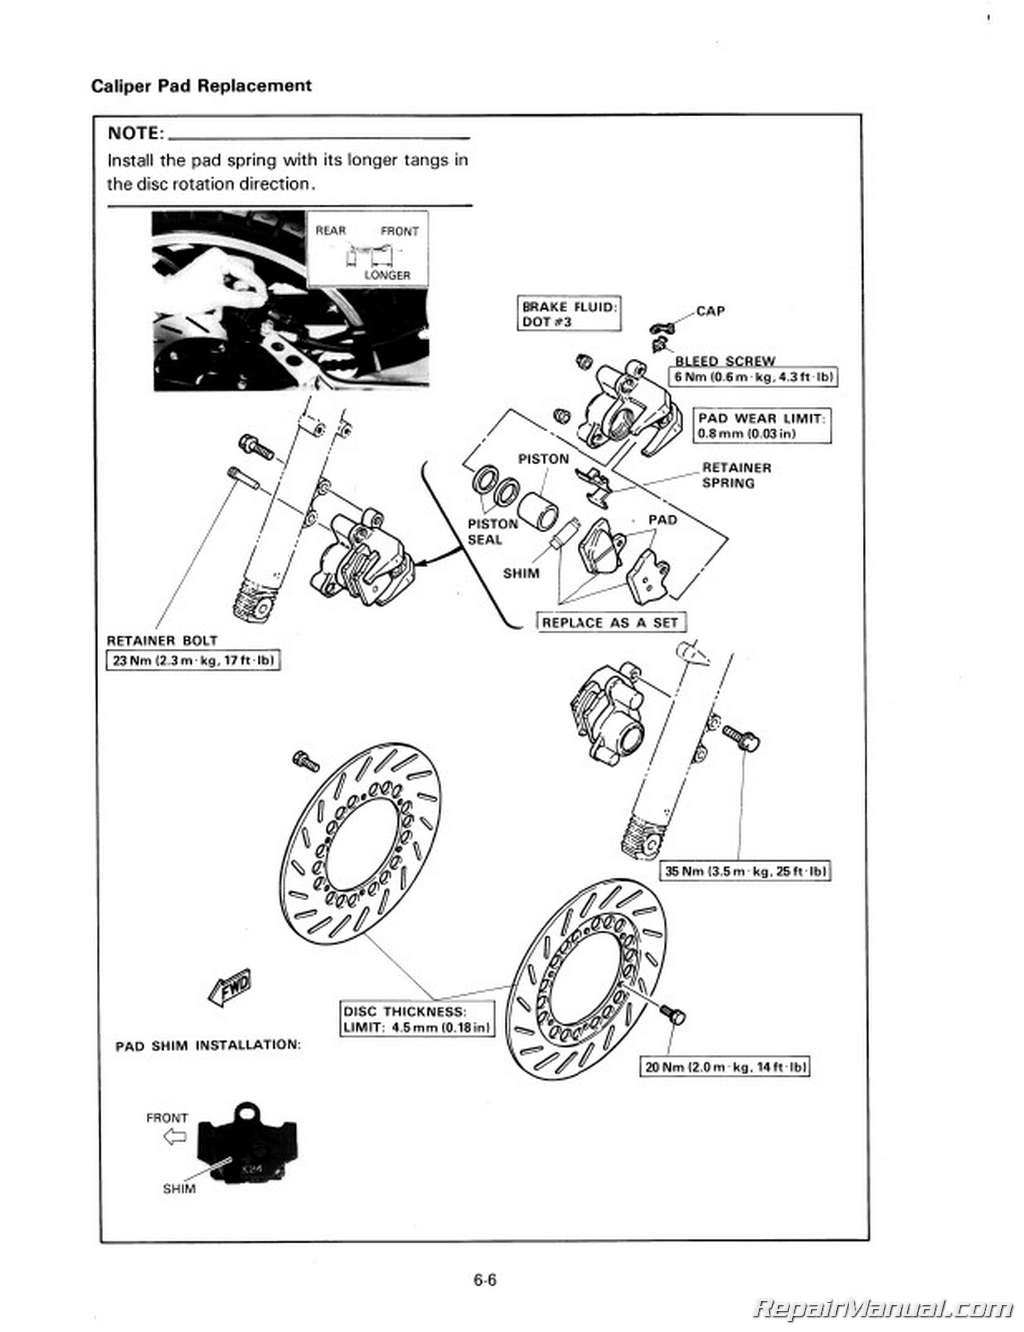 1984 Yamaha Rz350 Service Repair Maintenance Manuals